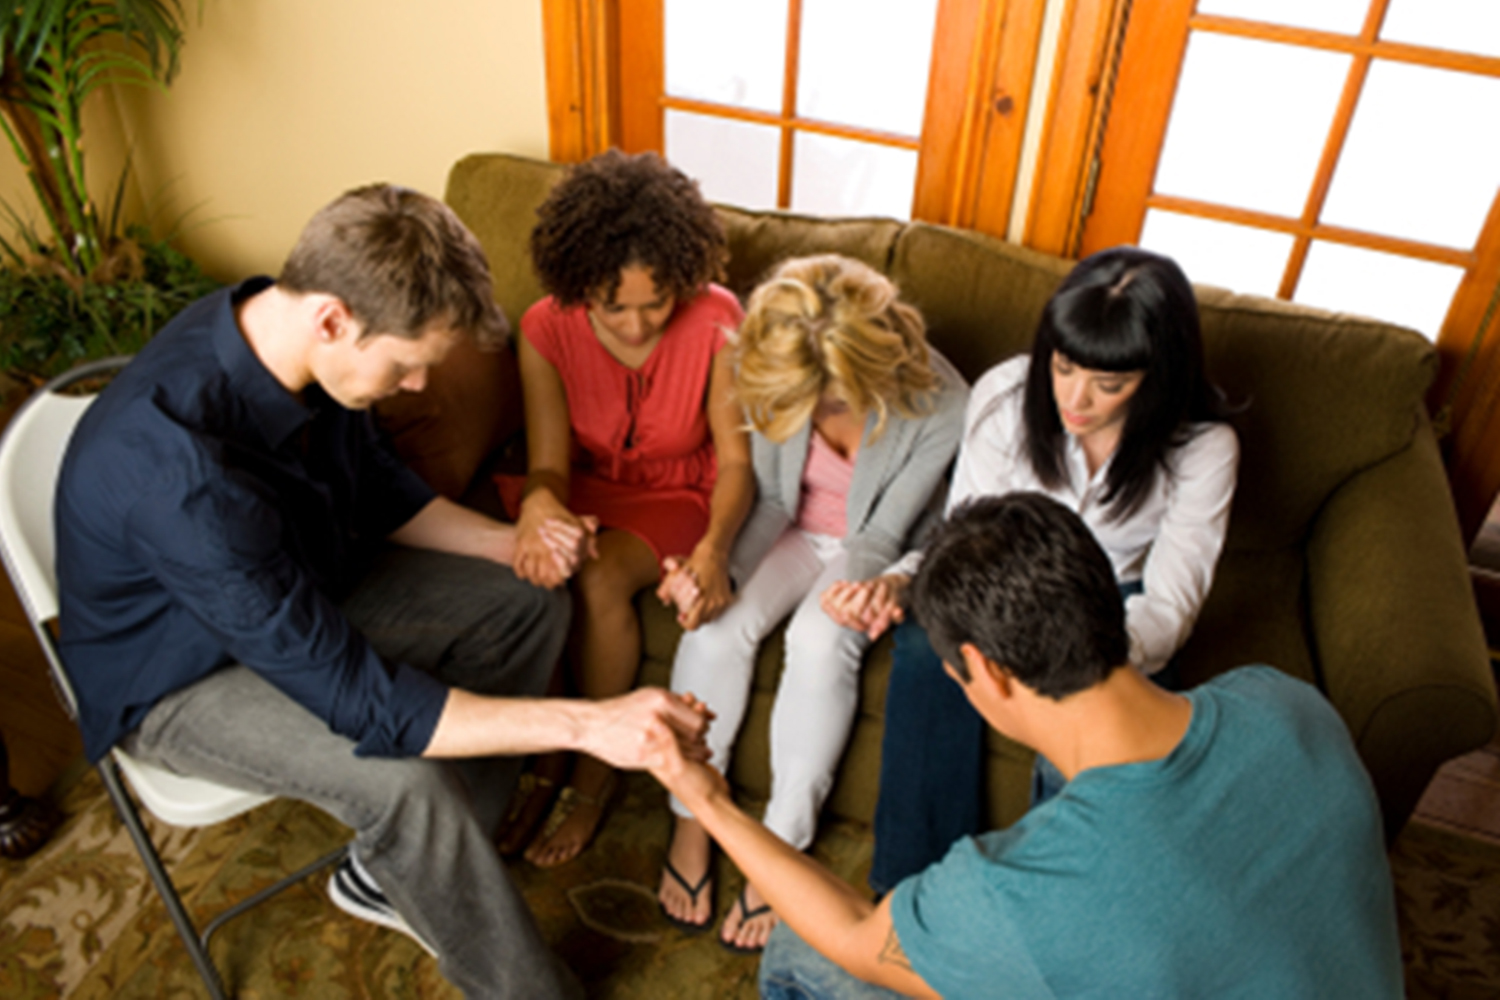 Small Groups - GET CONNECTEDKNOW JESUSBE TRANSFORMED